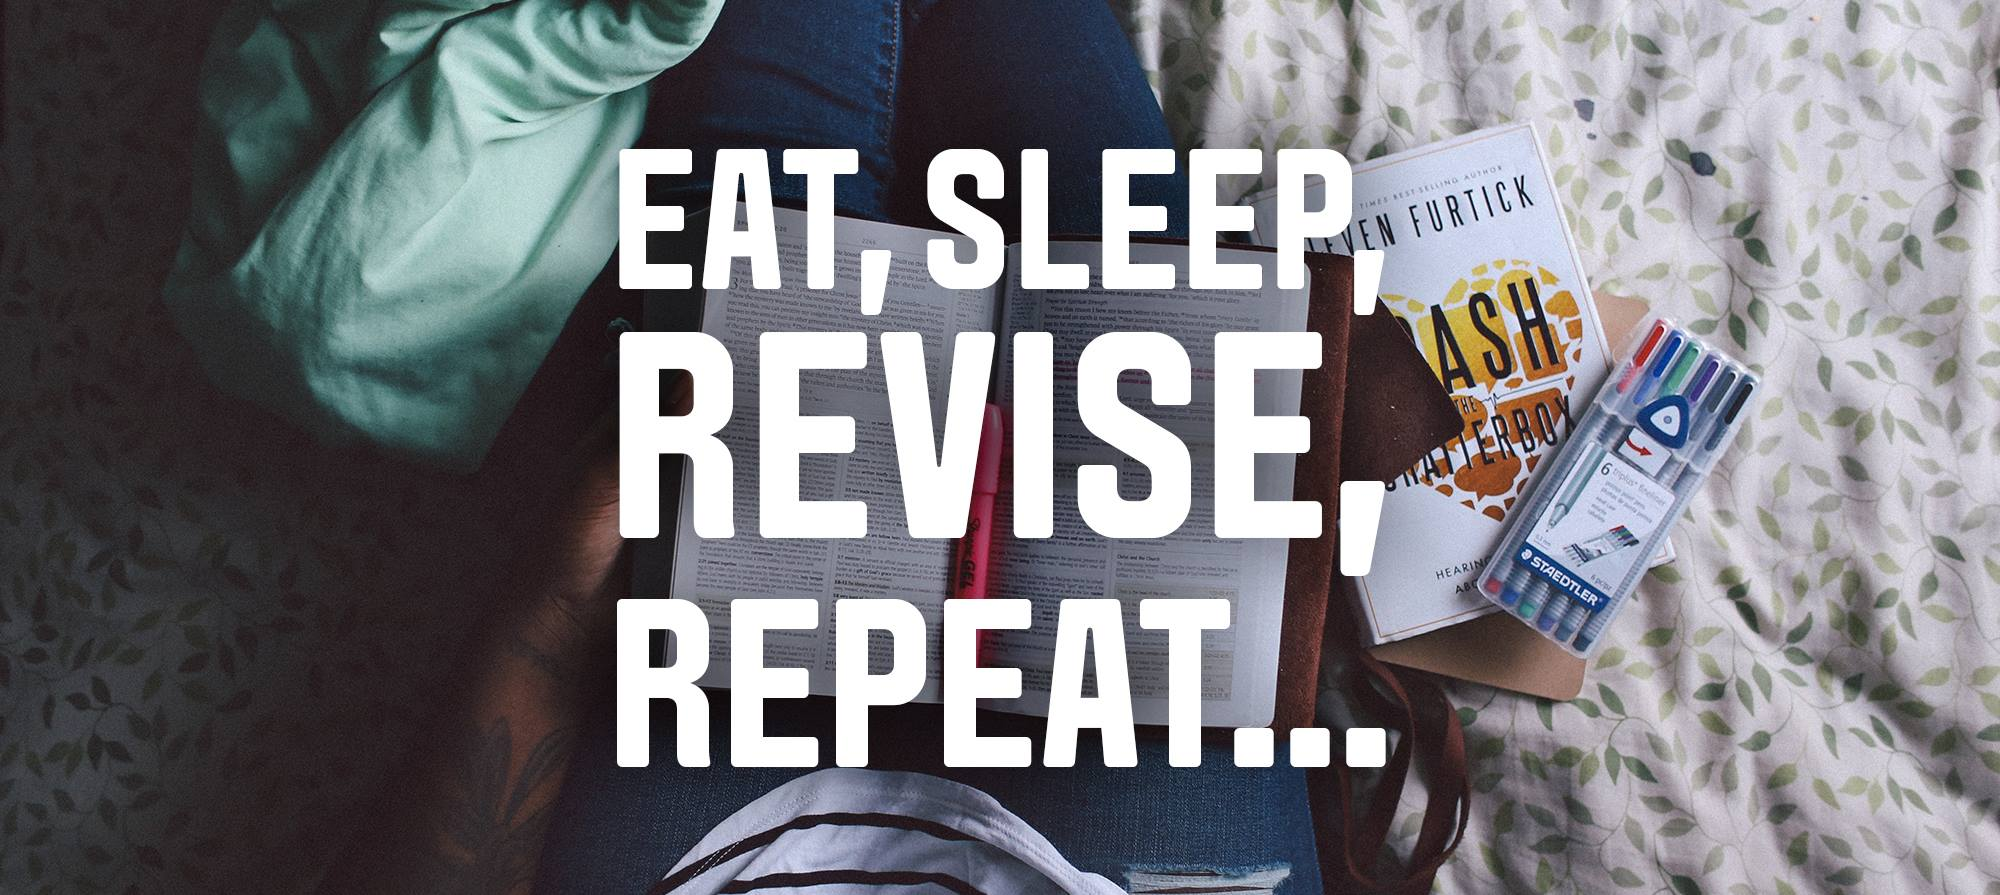 Eat, sleep, revise, repeat